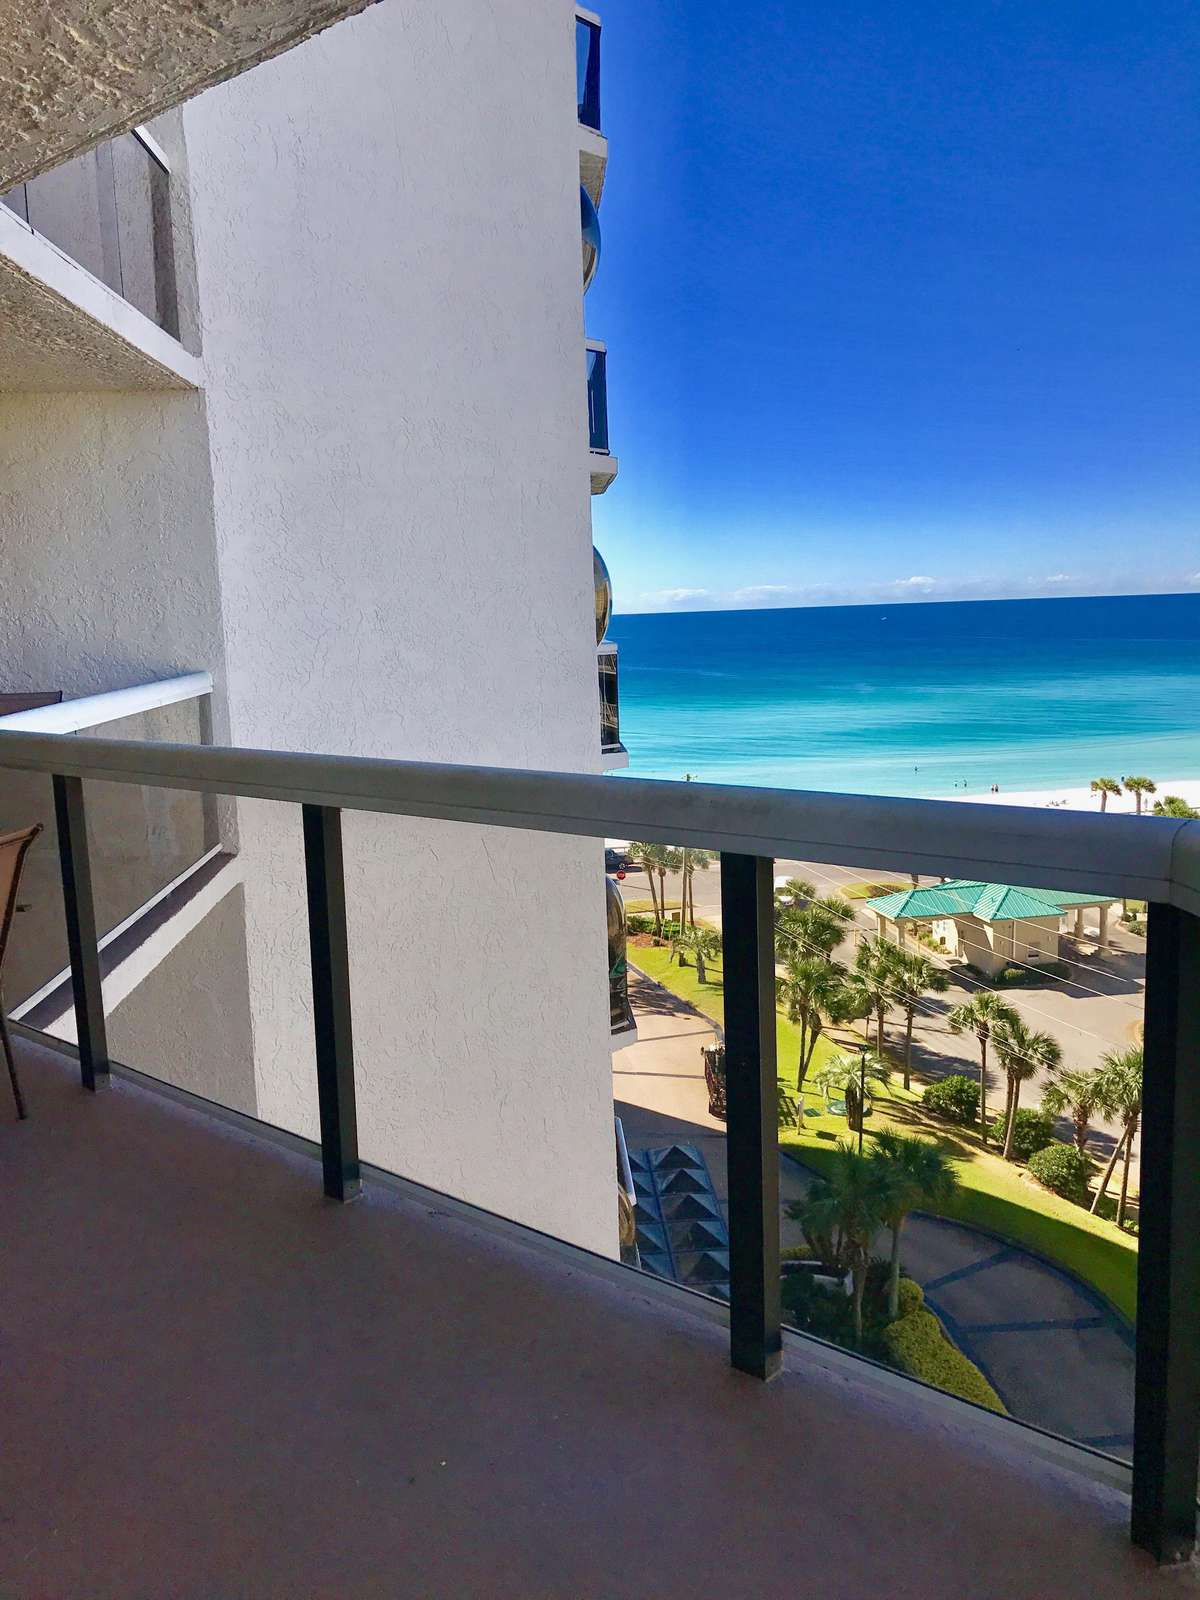 Enjoy the view from this balcony which runs the length of the condo! - property